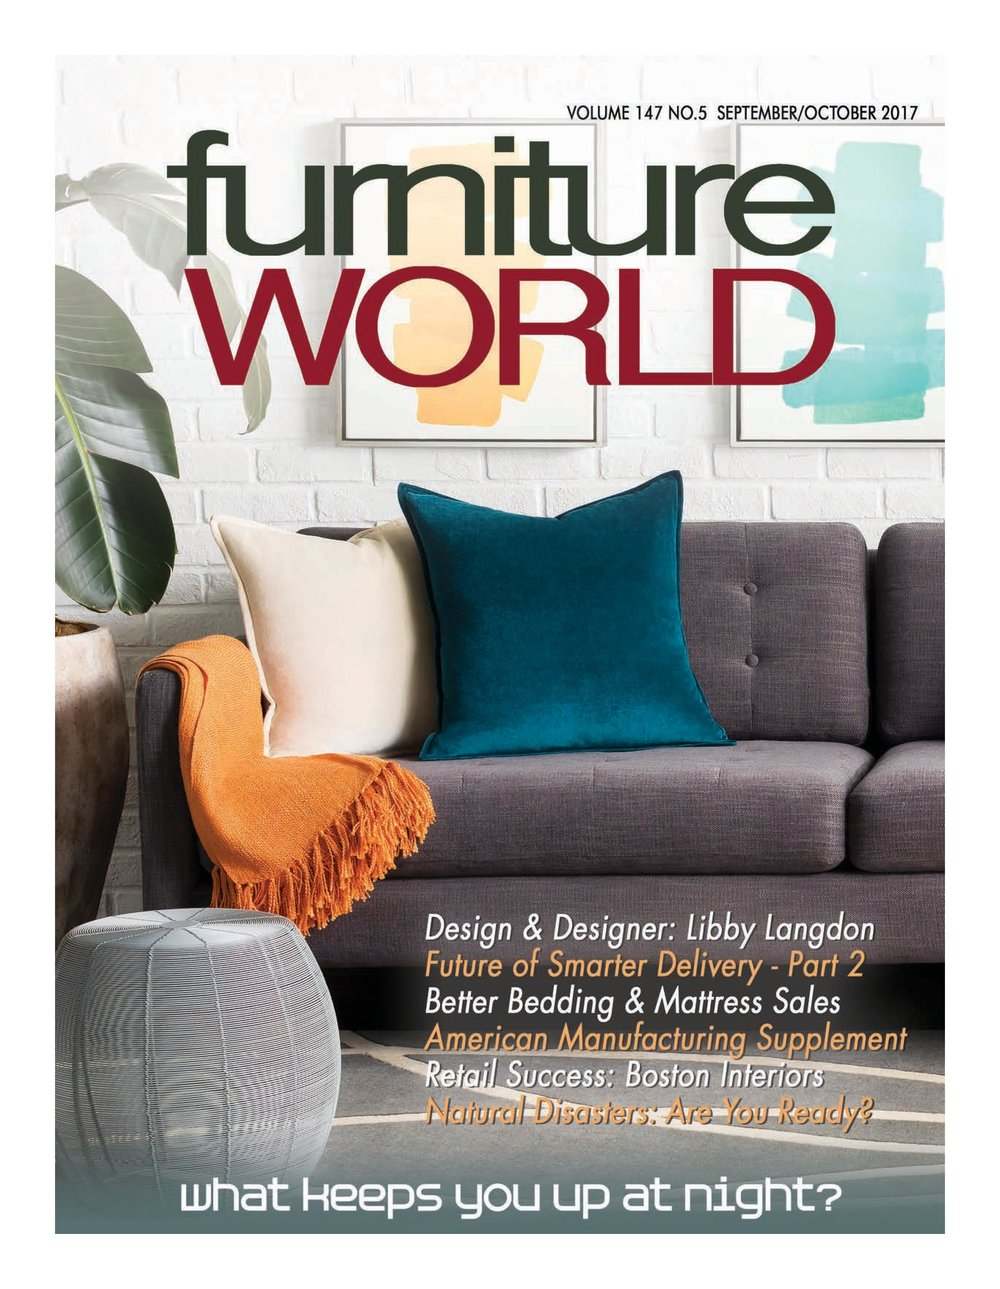 Furniture World Feature October 2017-page-001 (1).jpg